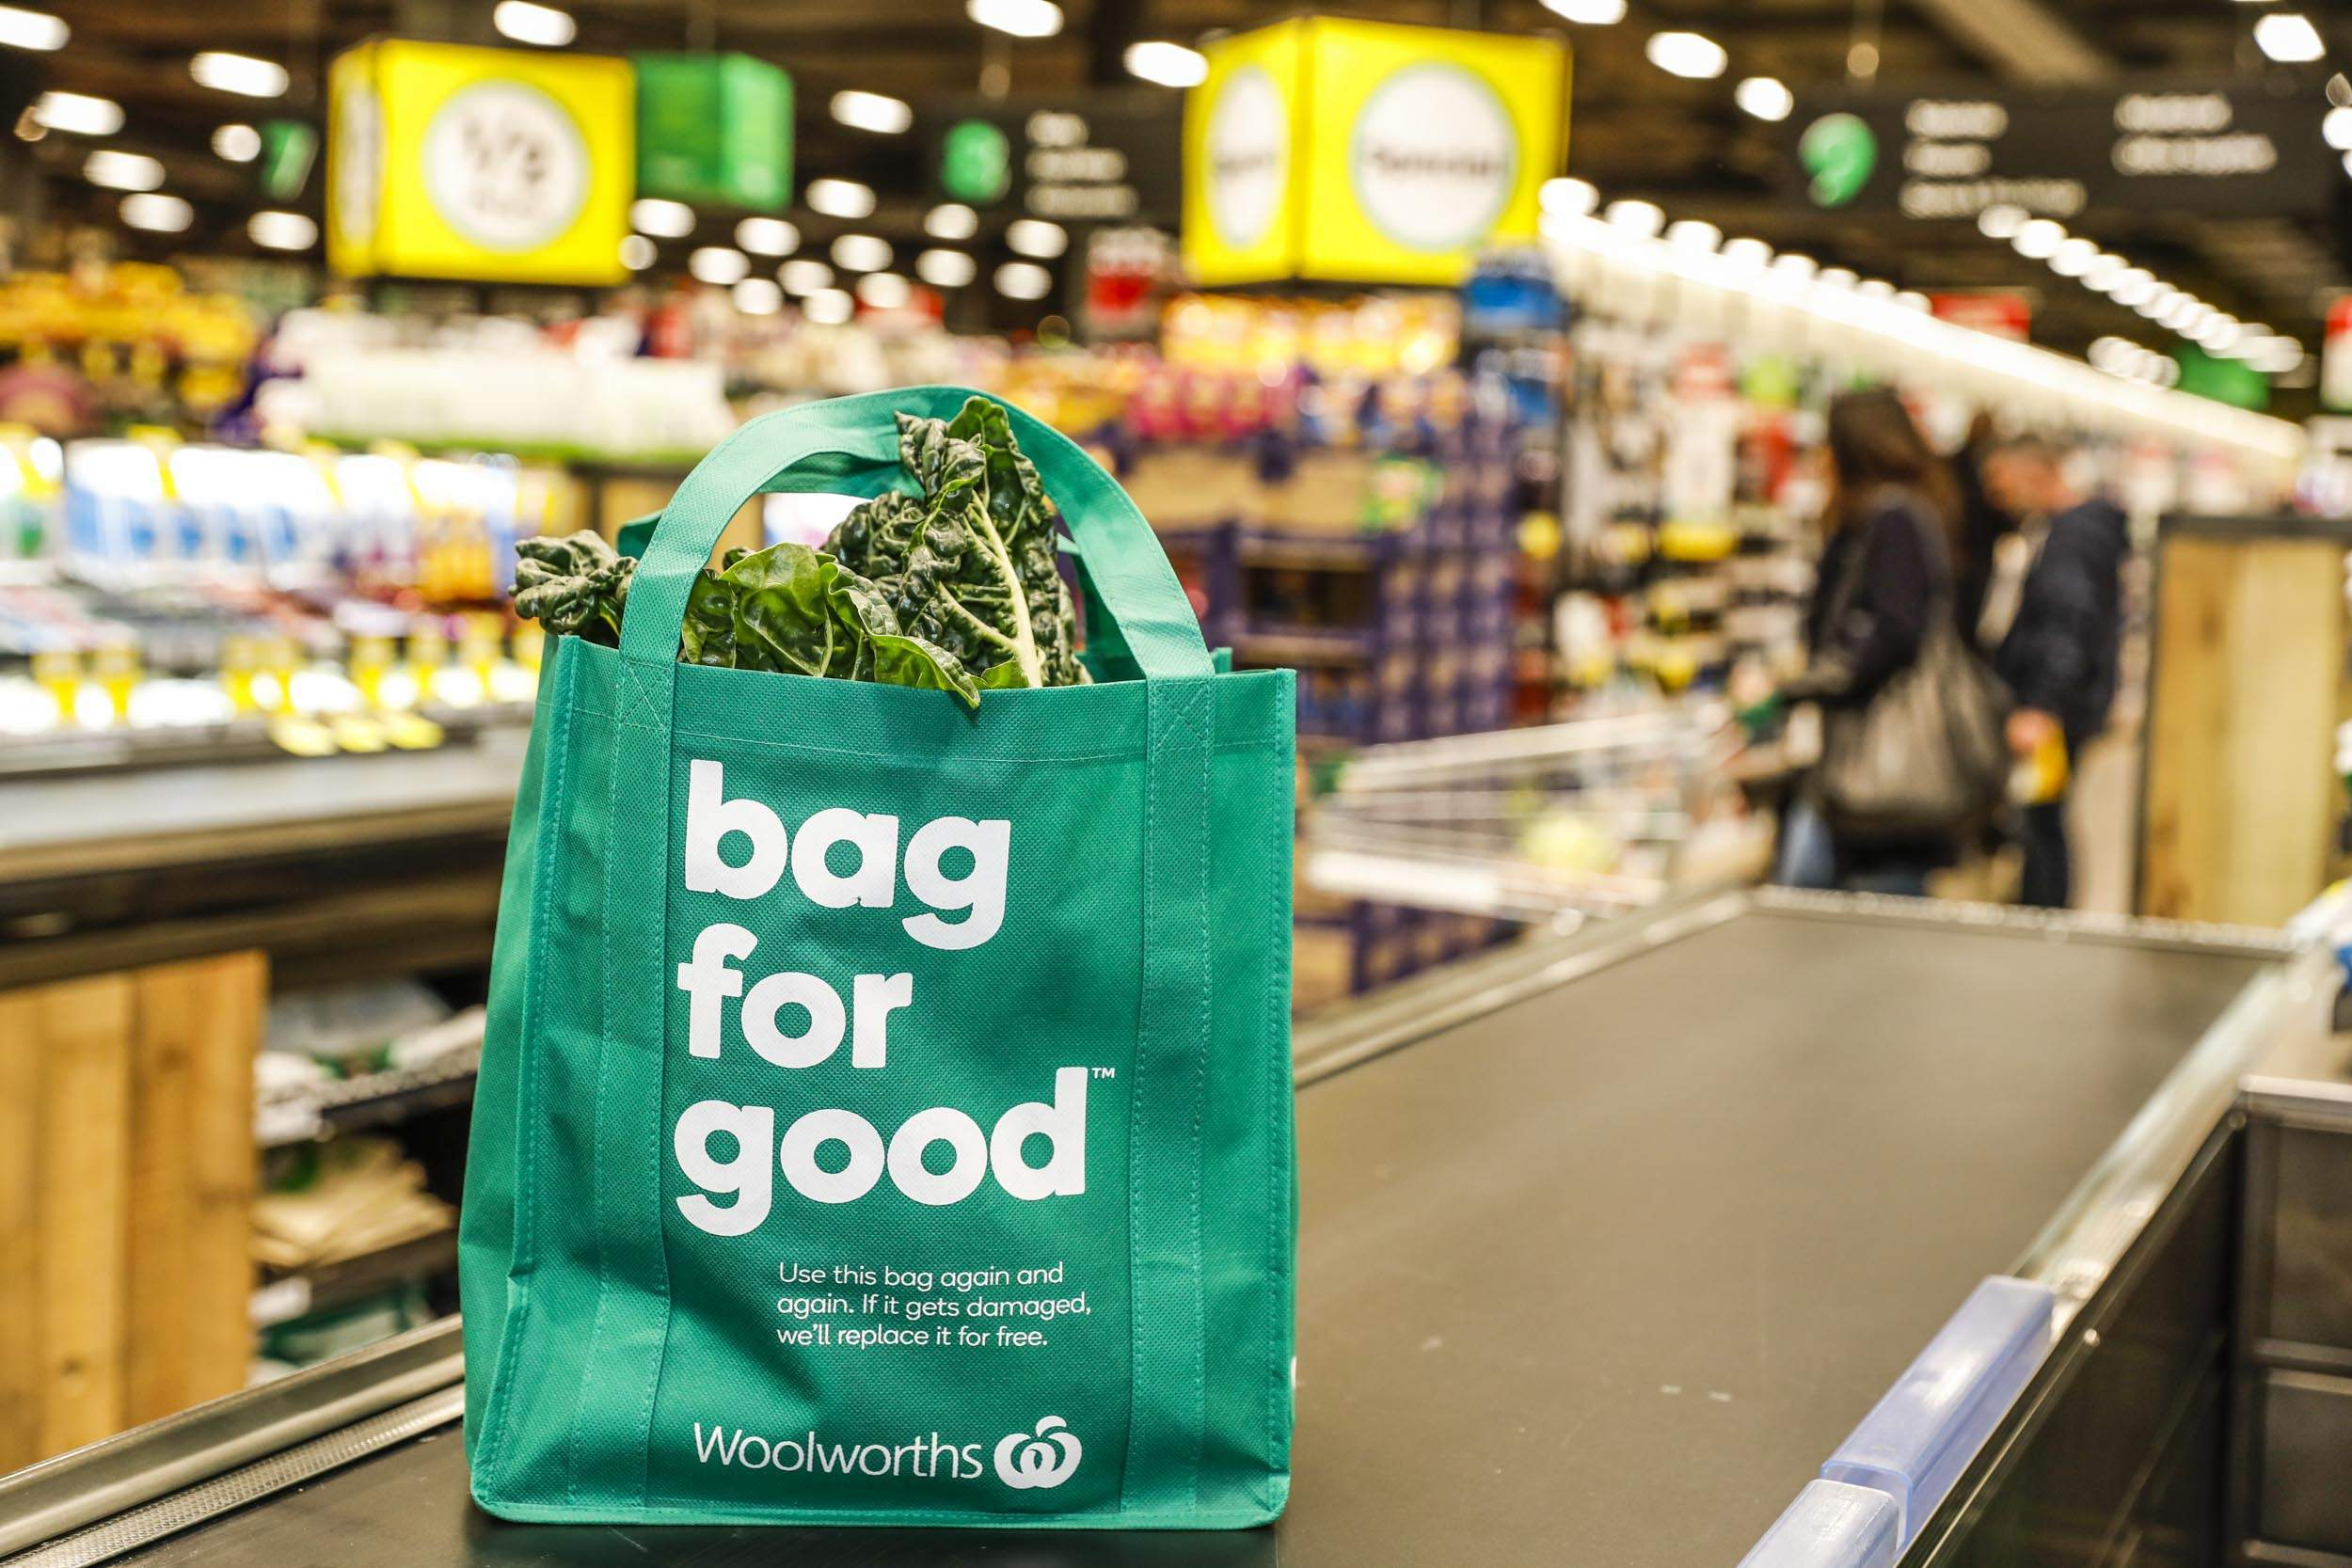 Australian retailer Woolworths to offer new green reusable shopping bag